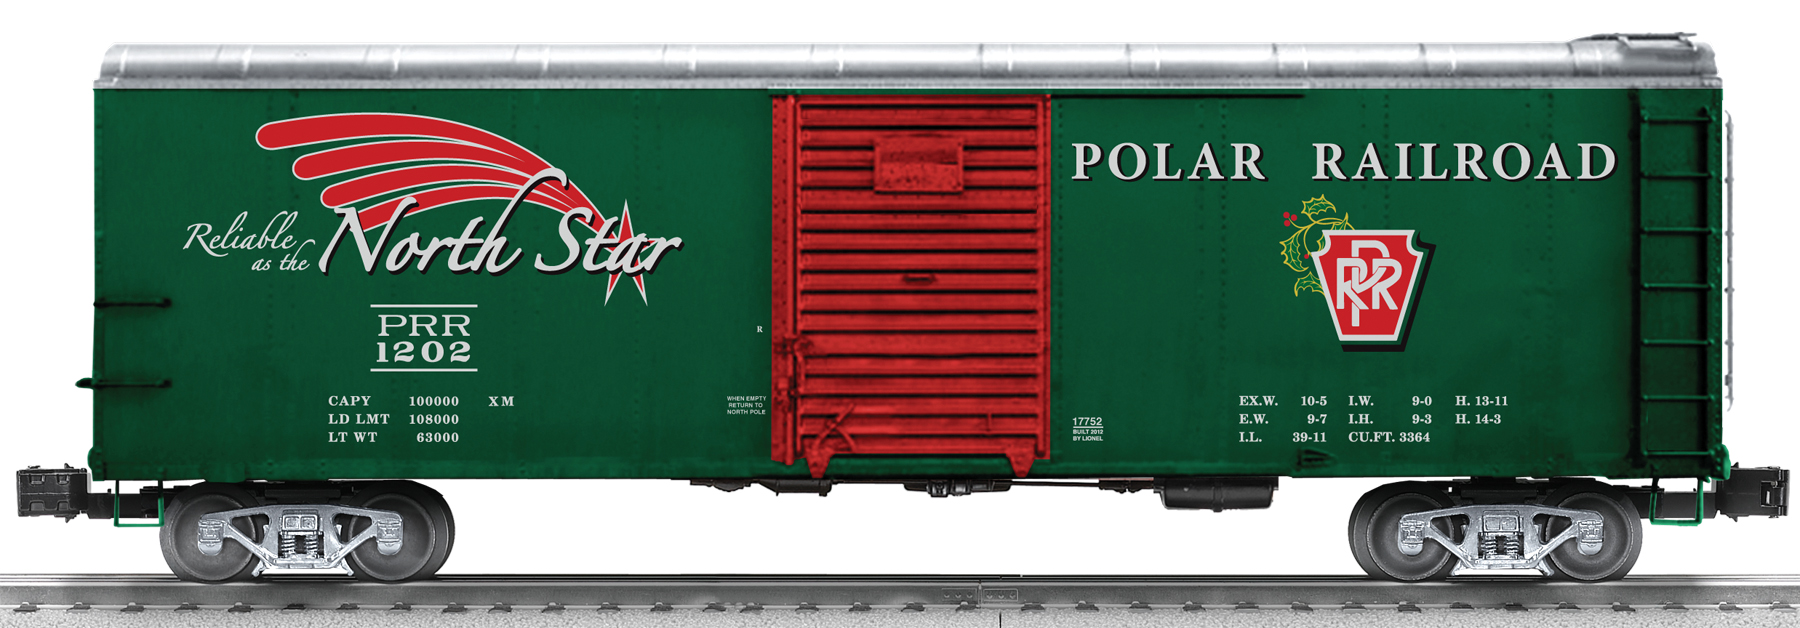 """Lionel 6-17752 Polar Railroad Round Roof Boxcar This is Lionel 6-17752 Polar Railroad Round Roof Boxcar. We have our winner! In a recent contest, Lionel RailRoader Club members submitted ideas for a new slogan to be used on an upcoming Polar Railroad car. The winning entry, """"Reliable as the North Star"""" was submitted by LRRC member Kent Tranter. This new slogan is featured for the first time on Lionel's new round roof boxcar decorated specially for the holidays.Its key features are:Die-cast metal sprung trucks andoperating couplersHidden uncoupling tabsDie-cast metal frameSeparately applied metal underframe detailsOpening doorsRoad number: 1202Dimensions: length: 11 ¼RailLine: Polar RailroadMinimum curve: O-31Condition: Factory New (C-9All original; unused; factory rubs and evidence of handling, shipping and factory test run.Standards for all toy train related accessory items apply to the visual appearance of the item and do not consider the operating functionality of the equipment.Condition and Grading Standards are subjective, at best, and are intended to act as a guide. )Operational Status: FunctionalThis item is brand new from the factory.Original Box: Yes (P-9May have store stamps and price tags. Has inner liners.)Manufacturer: LionelModel Number: 6-17752MSRP: $69.99Scale/Era: O ModernModel Type: Freight CarsAvailability: Ships in 3 to 5 Business Days.The Trainz SKU for this item is P11680074. Track: 11680074 - FS - 001 - TrainzAuctionGroup00UNK - TDIDUNK"""